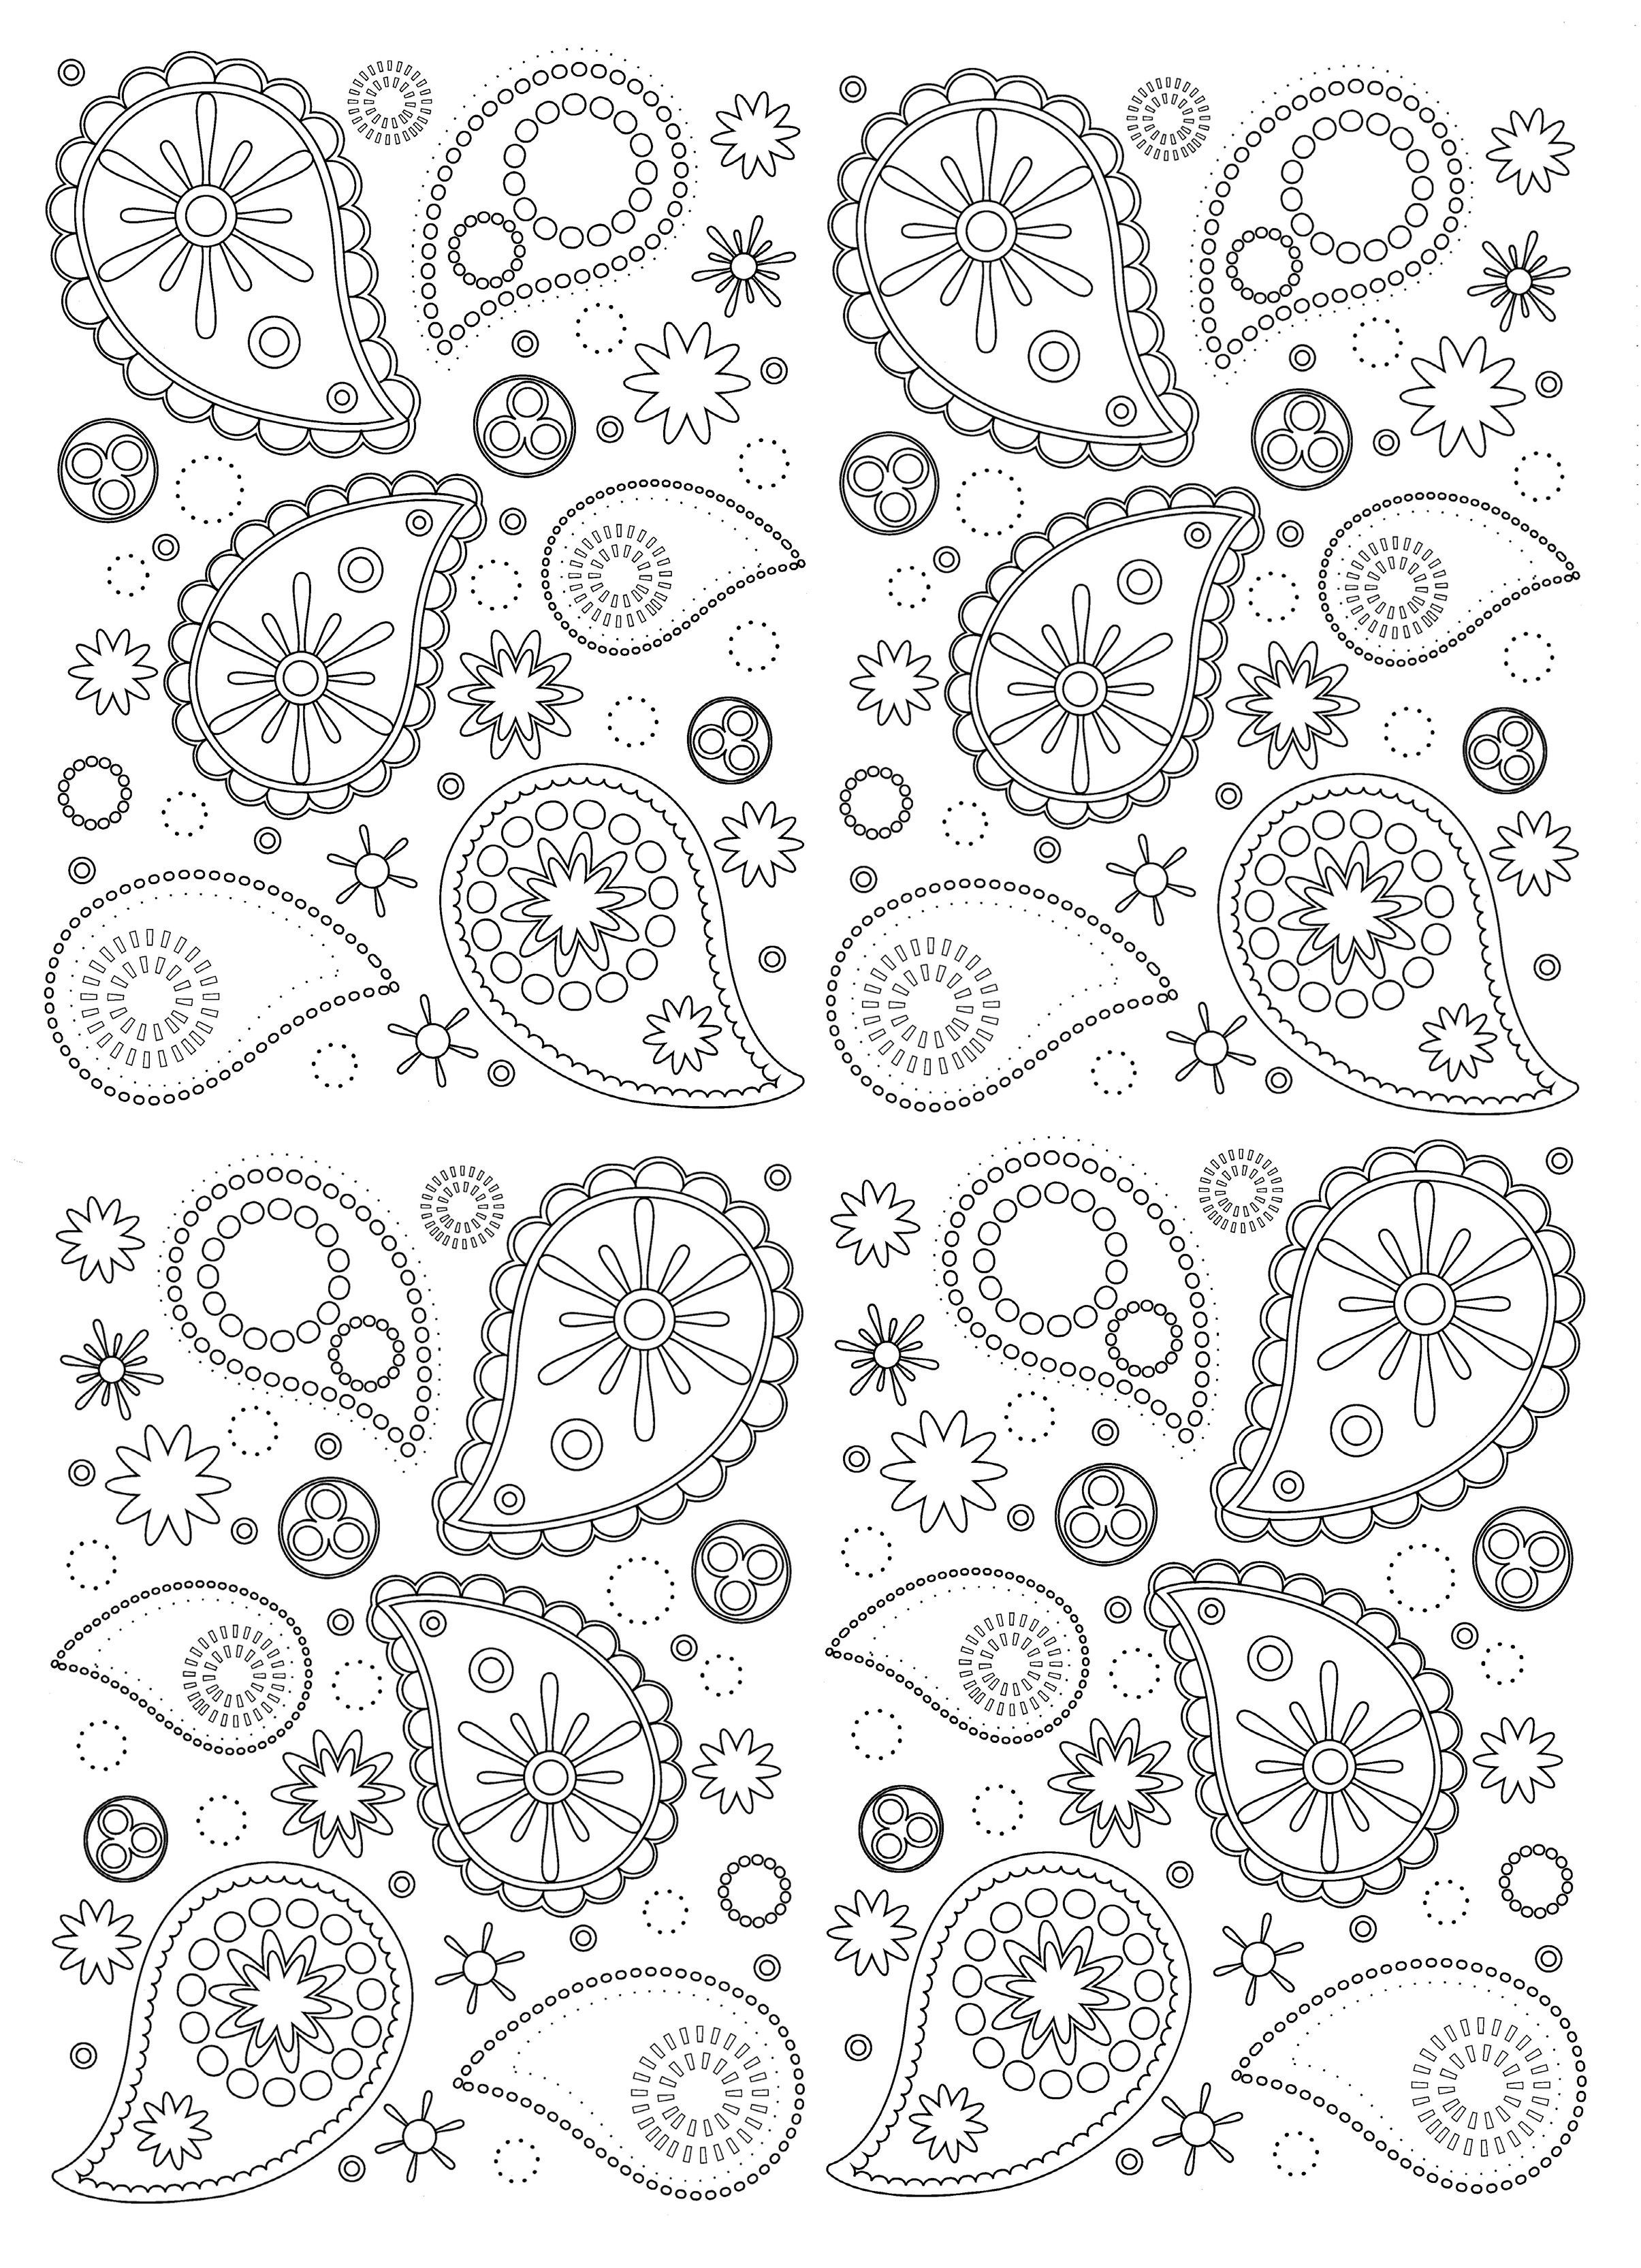 Paisley Paisley Patterns From The Gallery Oriental Keywords Paisley Just Color Discover Al Paisley Coloring Pages Coloring Pages Free Coloring Pages